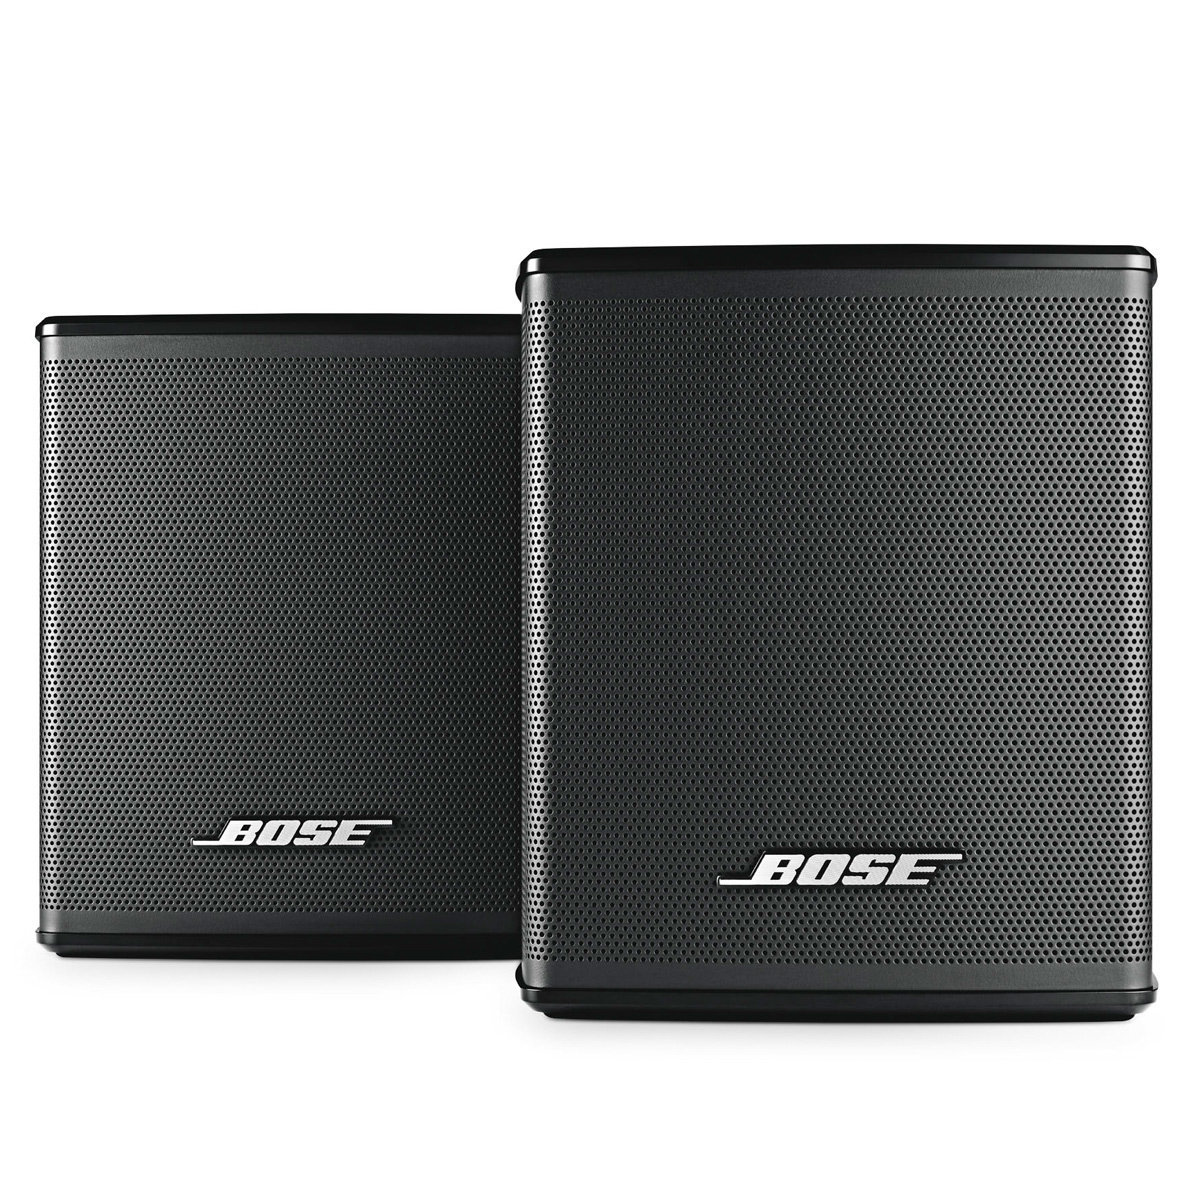 Bose Home Cinema Bose 5.1 System (soundbar 700 + Surround Speakers + Bass Module 700) | World Wide Stereo